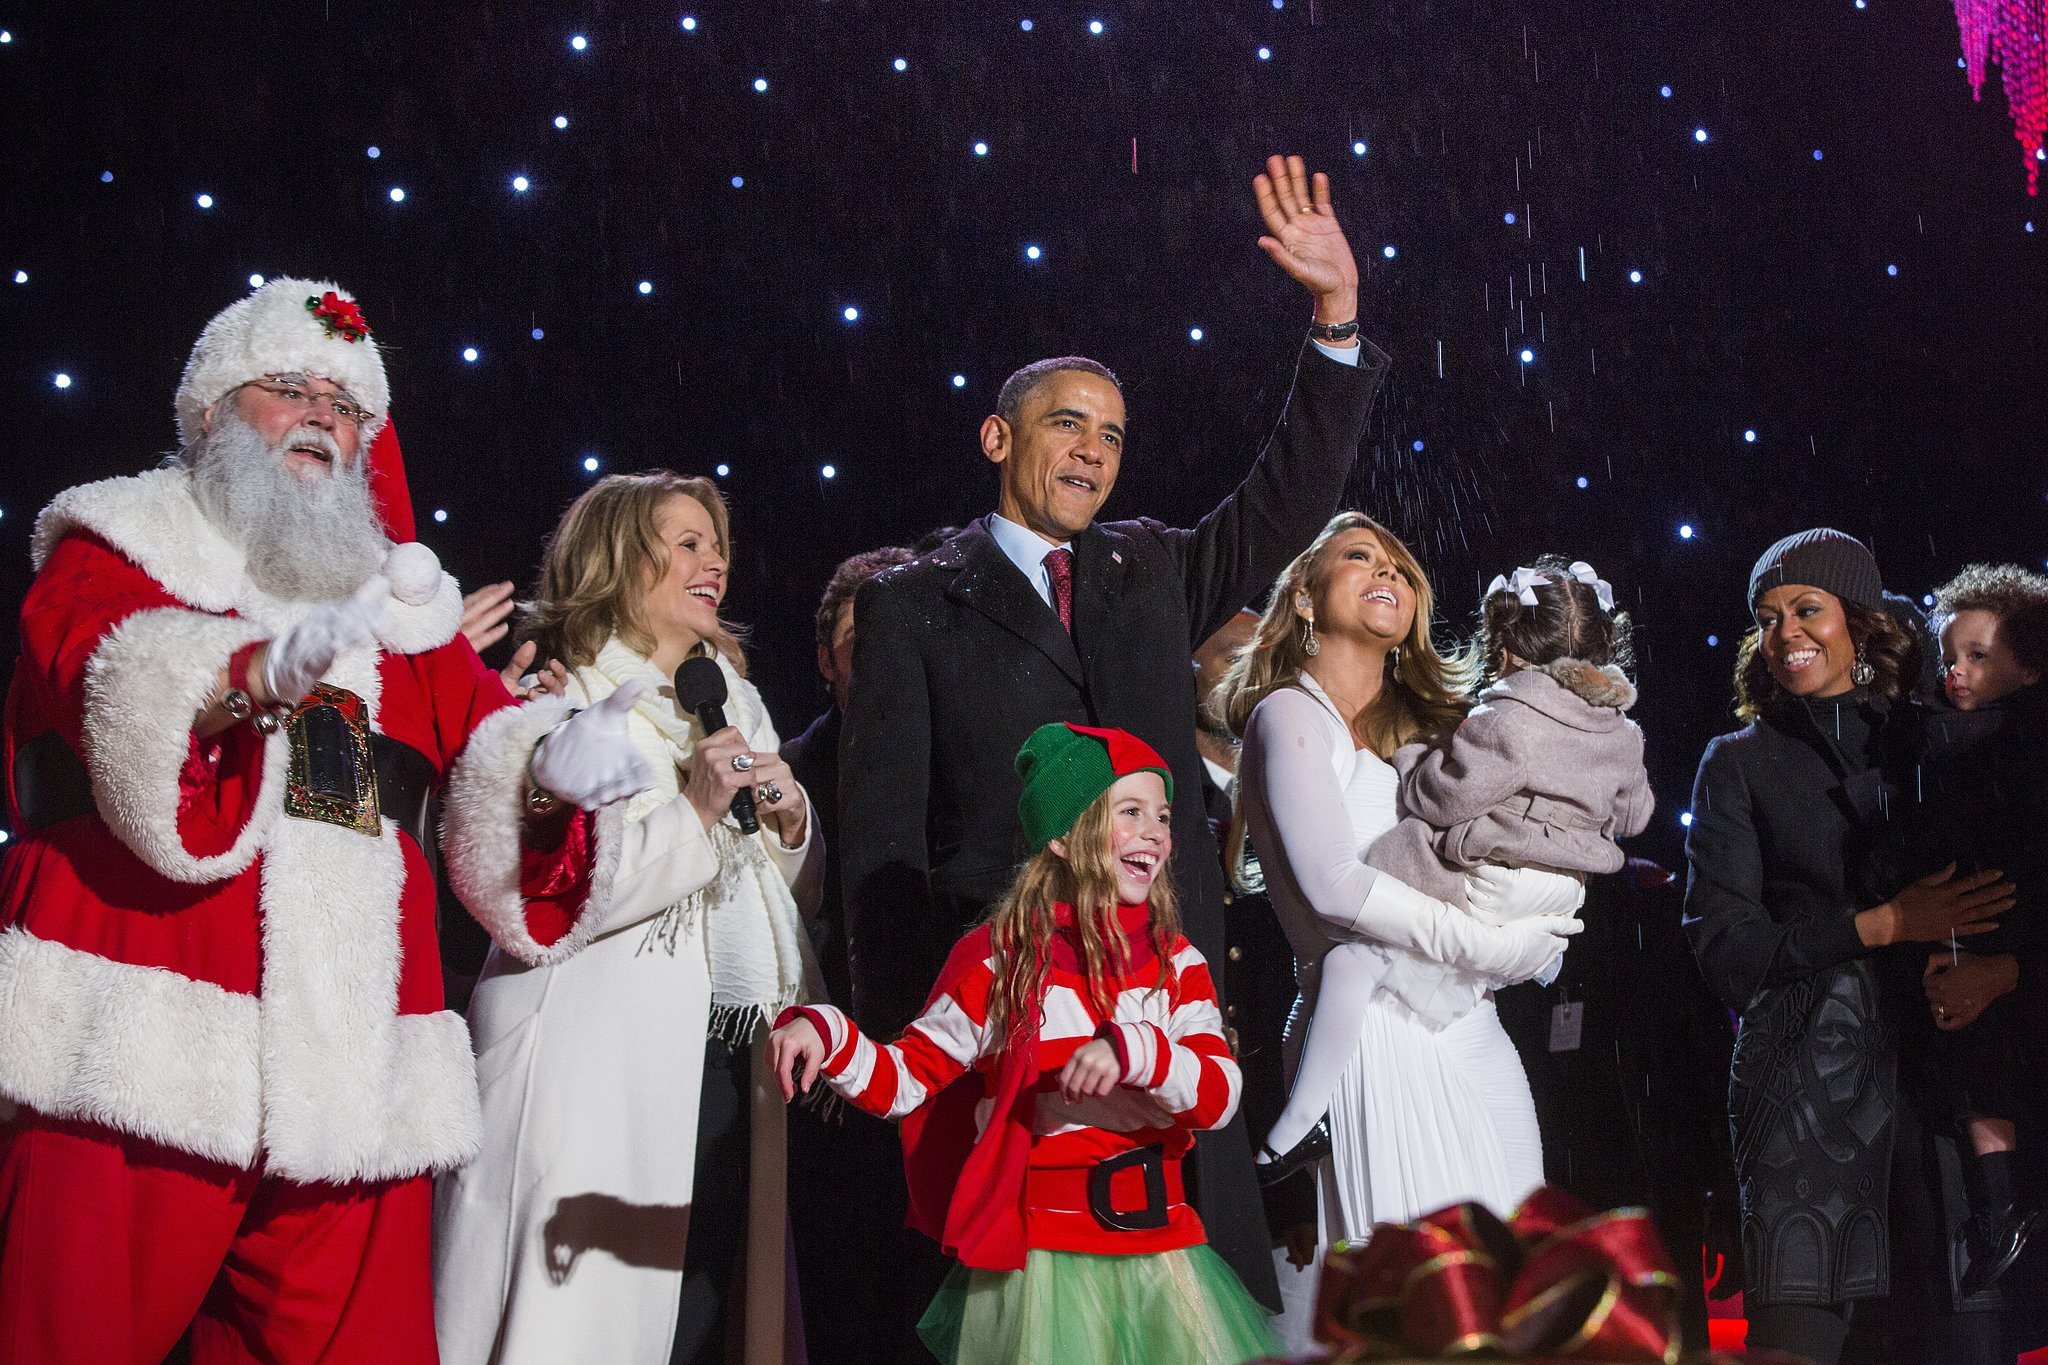 They Shared the Stage With Mariah Carey For the National Tree-Lighting